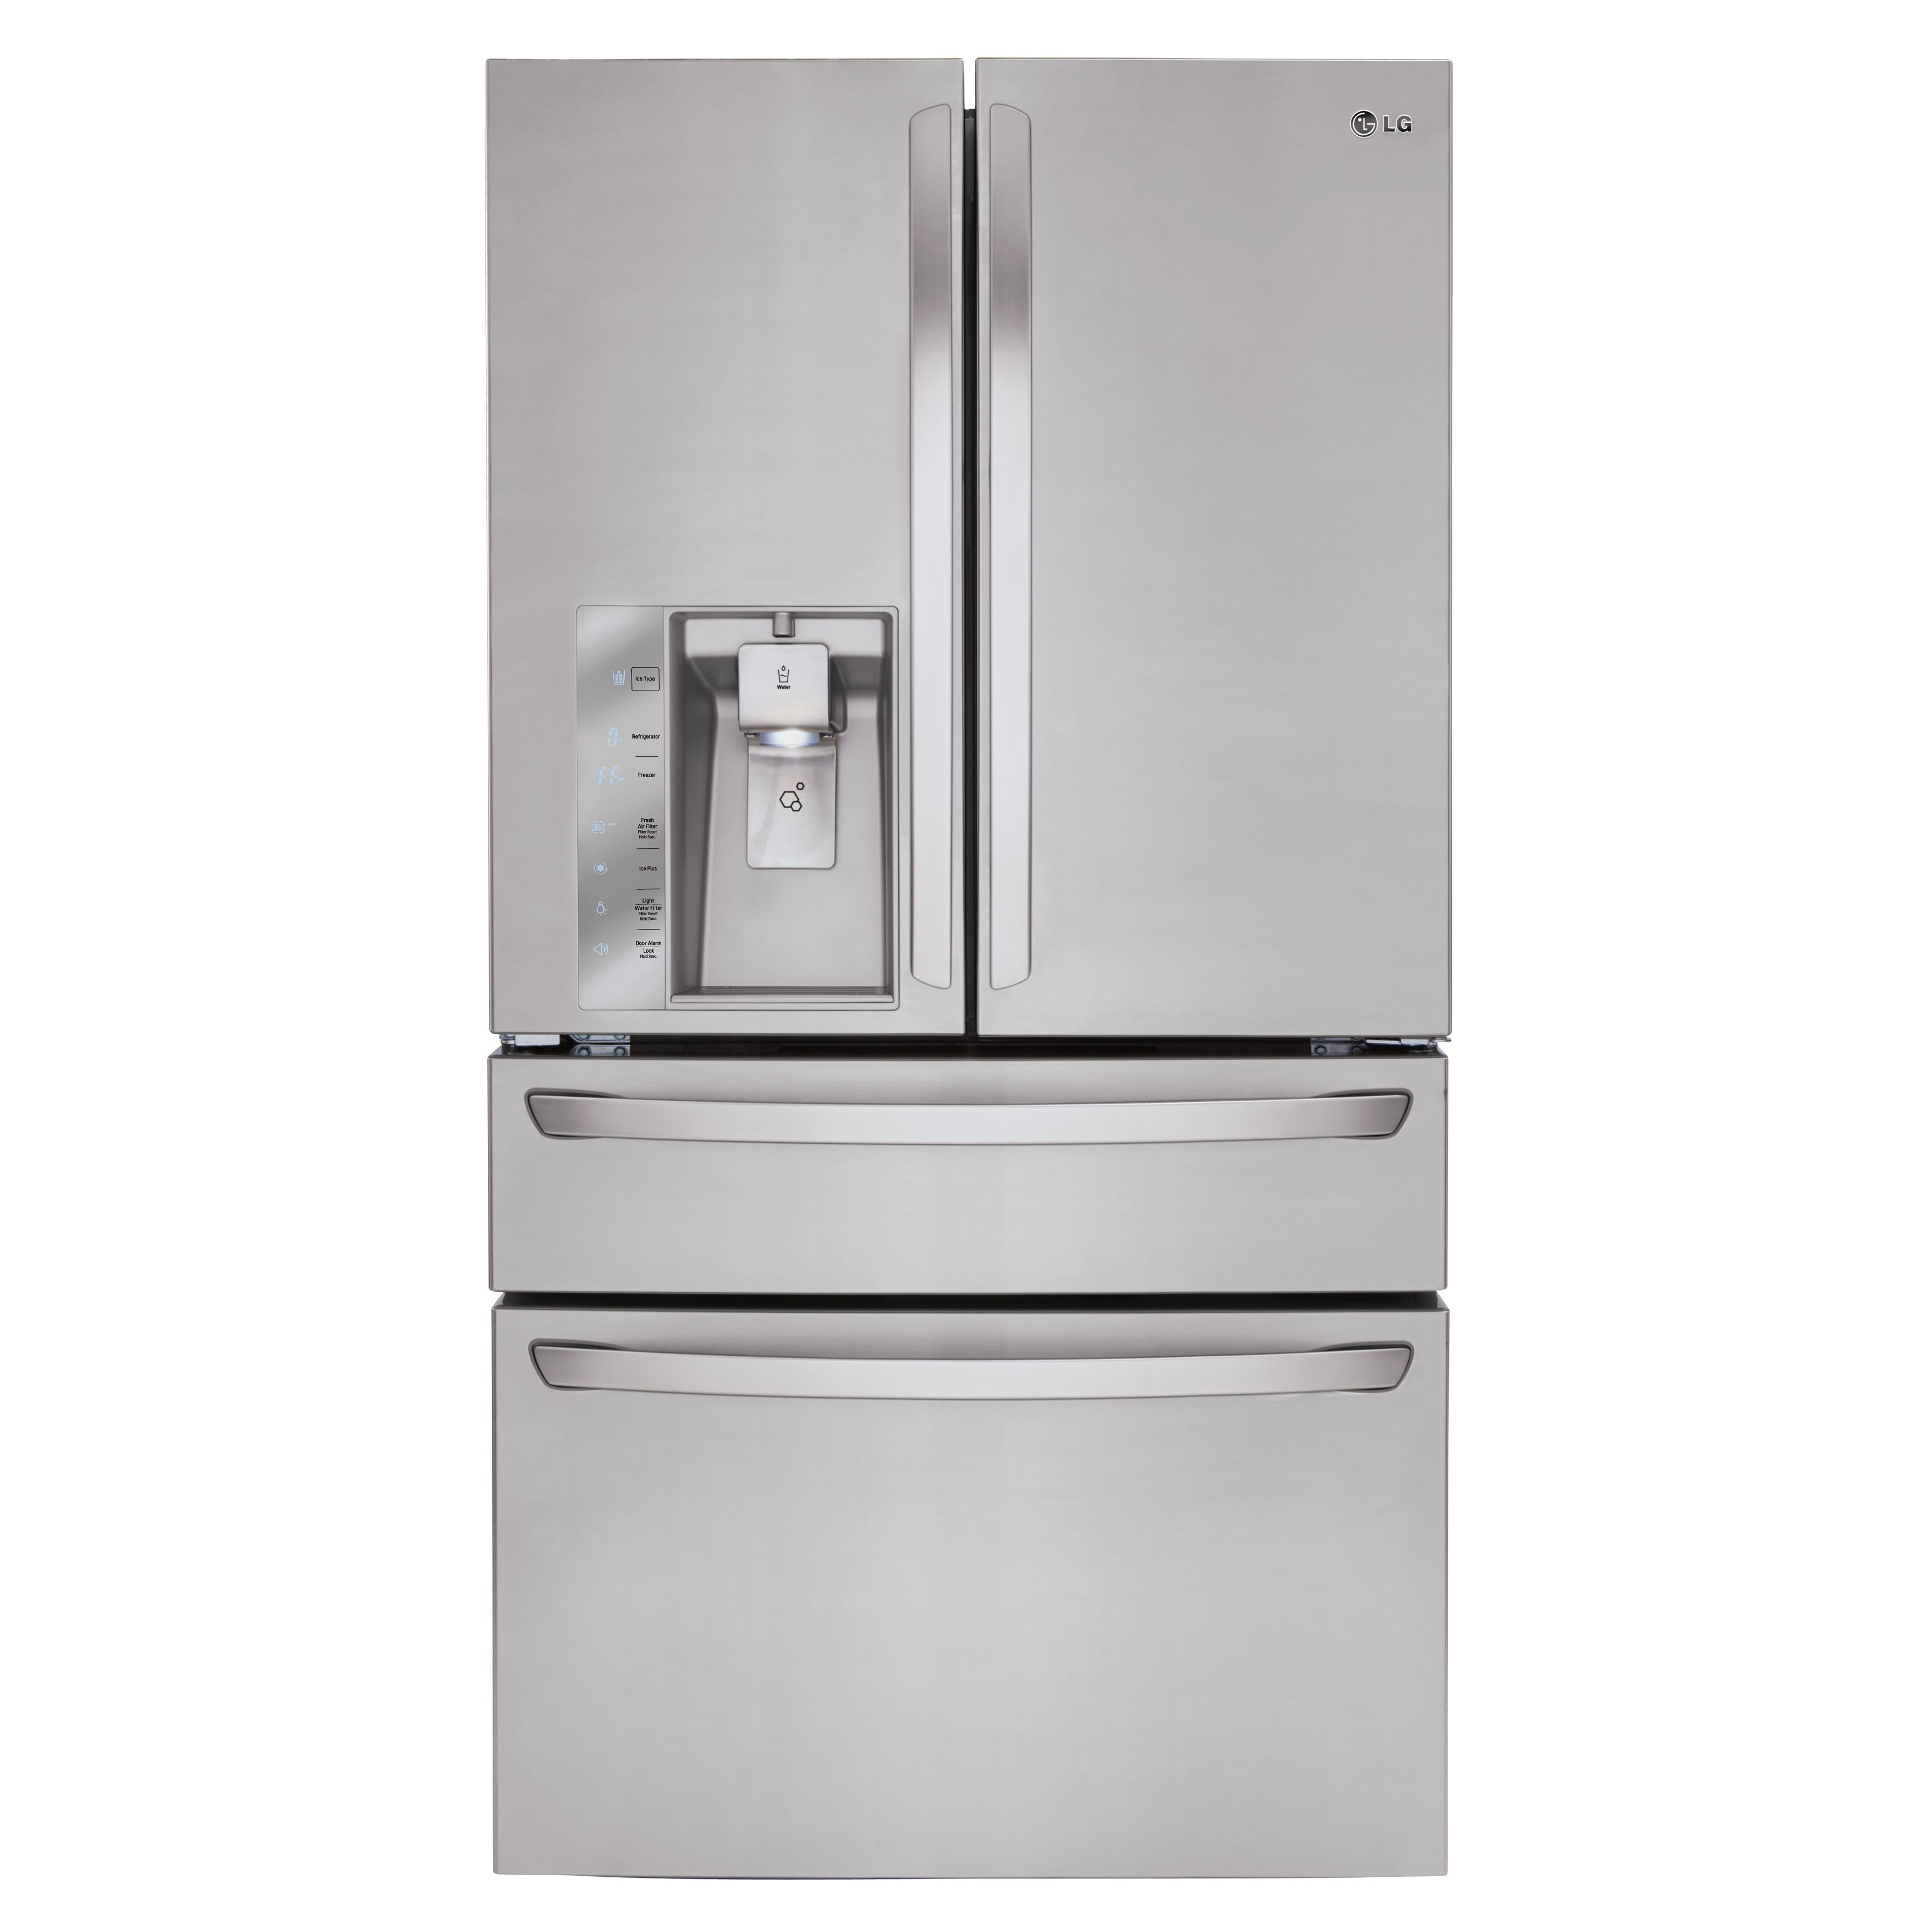 Shop LG Appliances LG Ft French Door Refrigerator With Single Ice Maker Door  Within Door ENERGY STAR At Loweu0027s Canada. Find Our Selection Of  Refrigerators ...